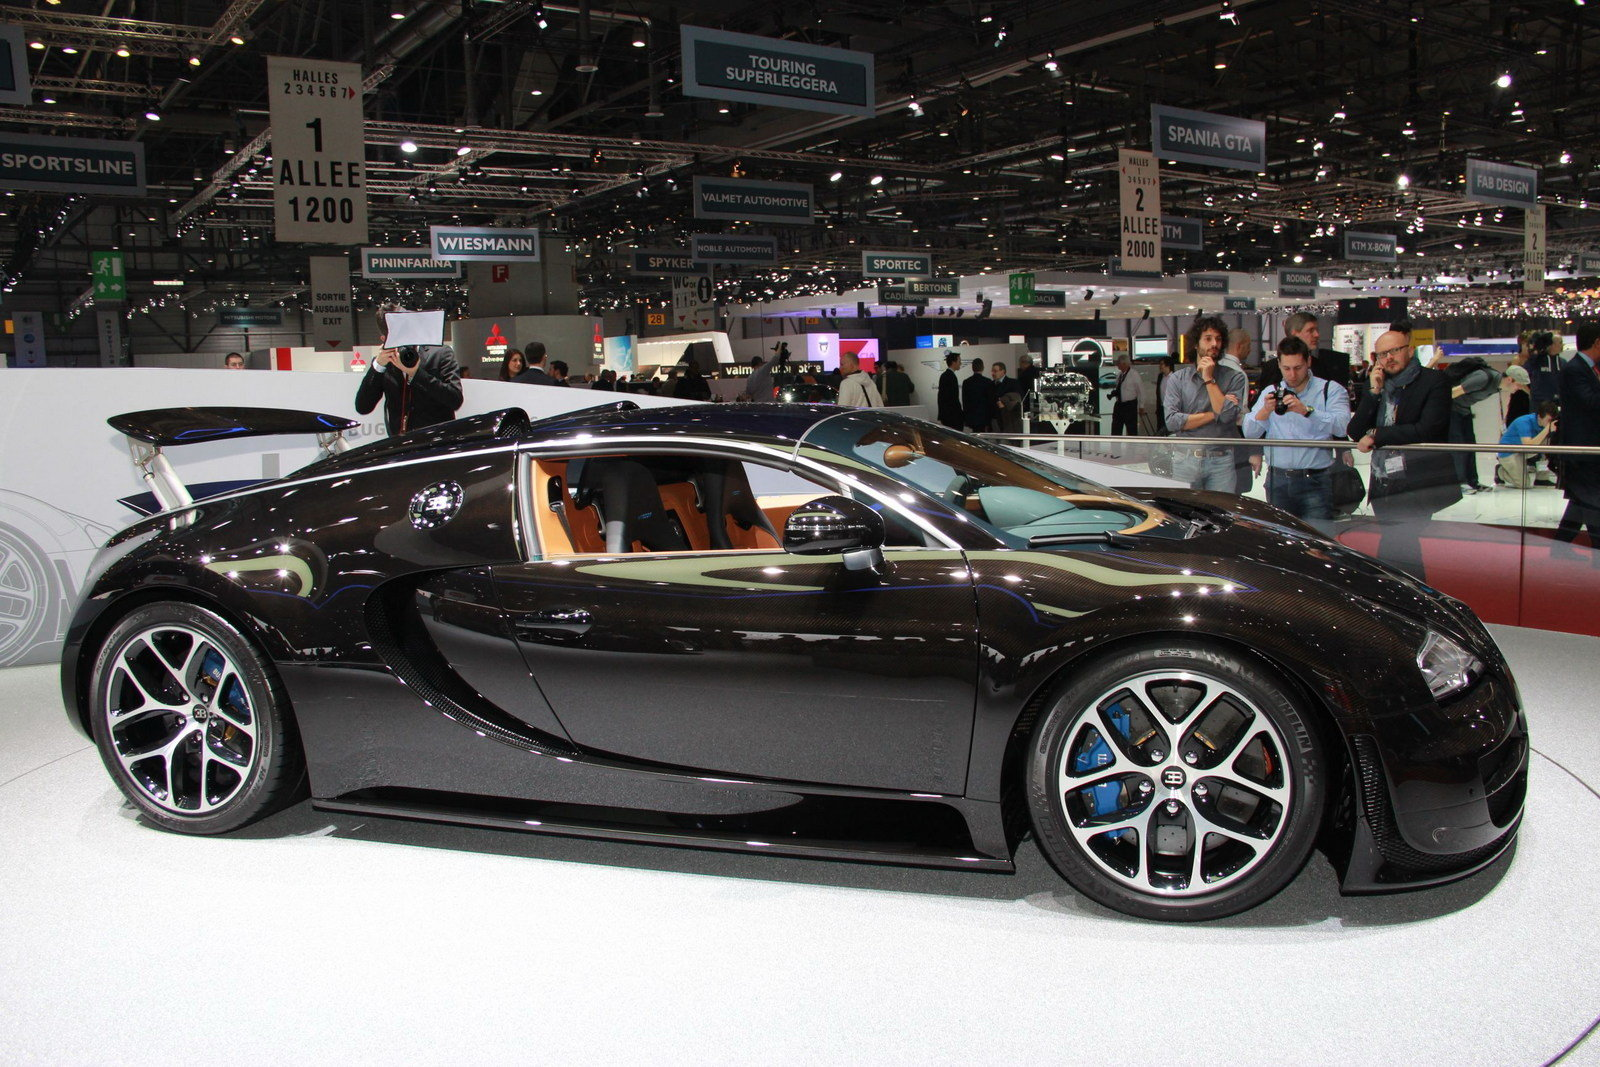 2013 bugatti veyron 16 4 grand sport vitesse black carbon picture 497445 car review top speed. Black Bedroom Furniture Sets. Home Design Ideas